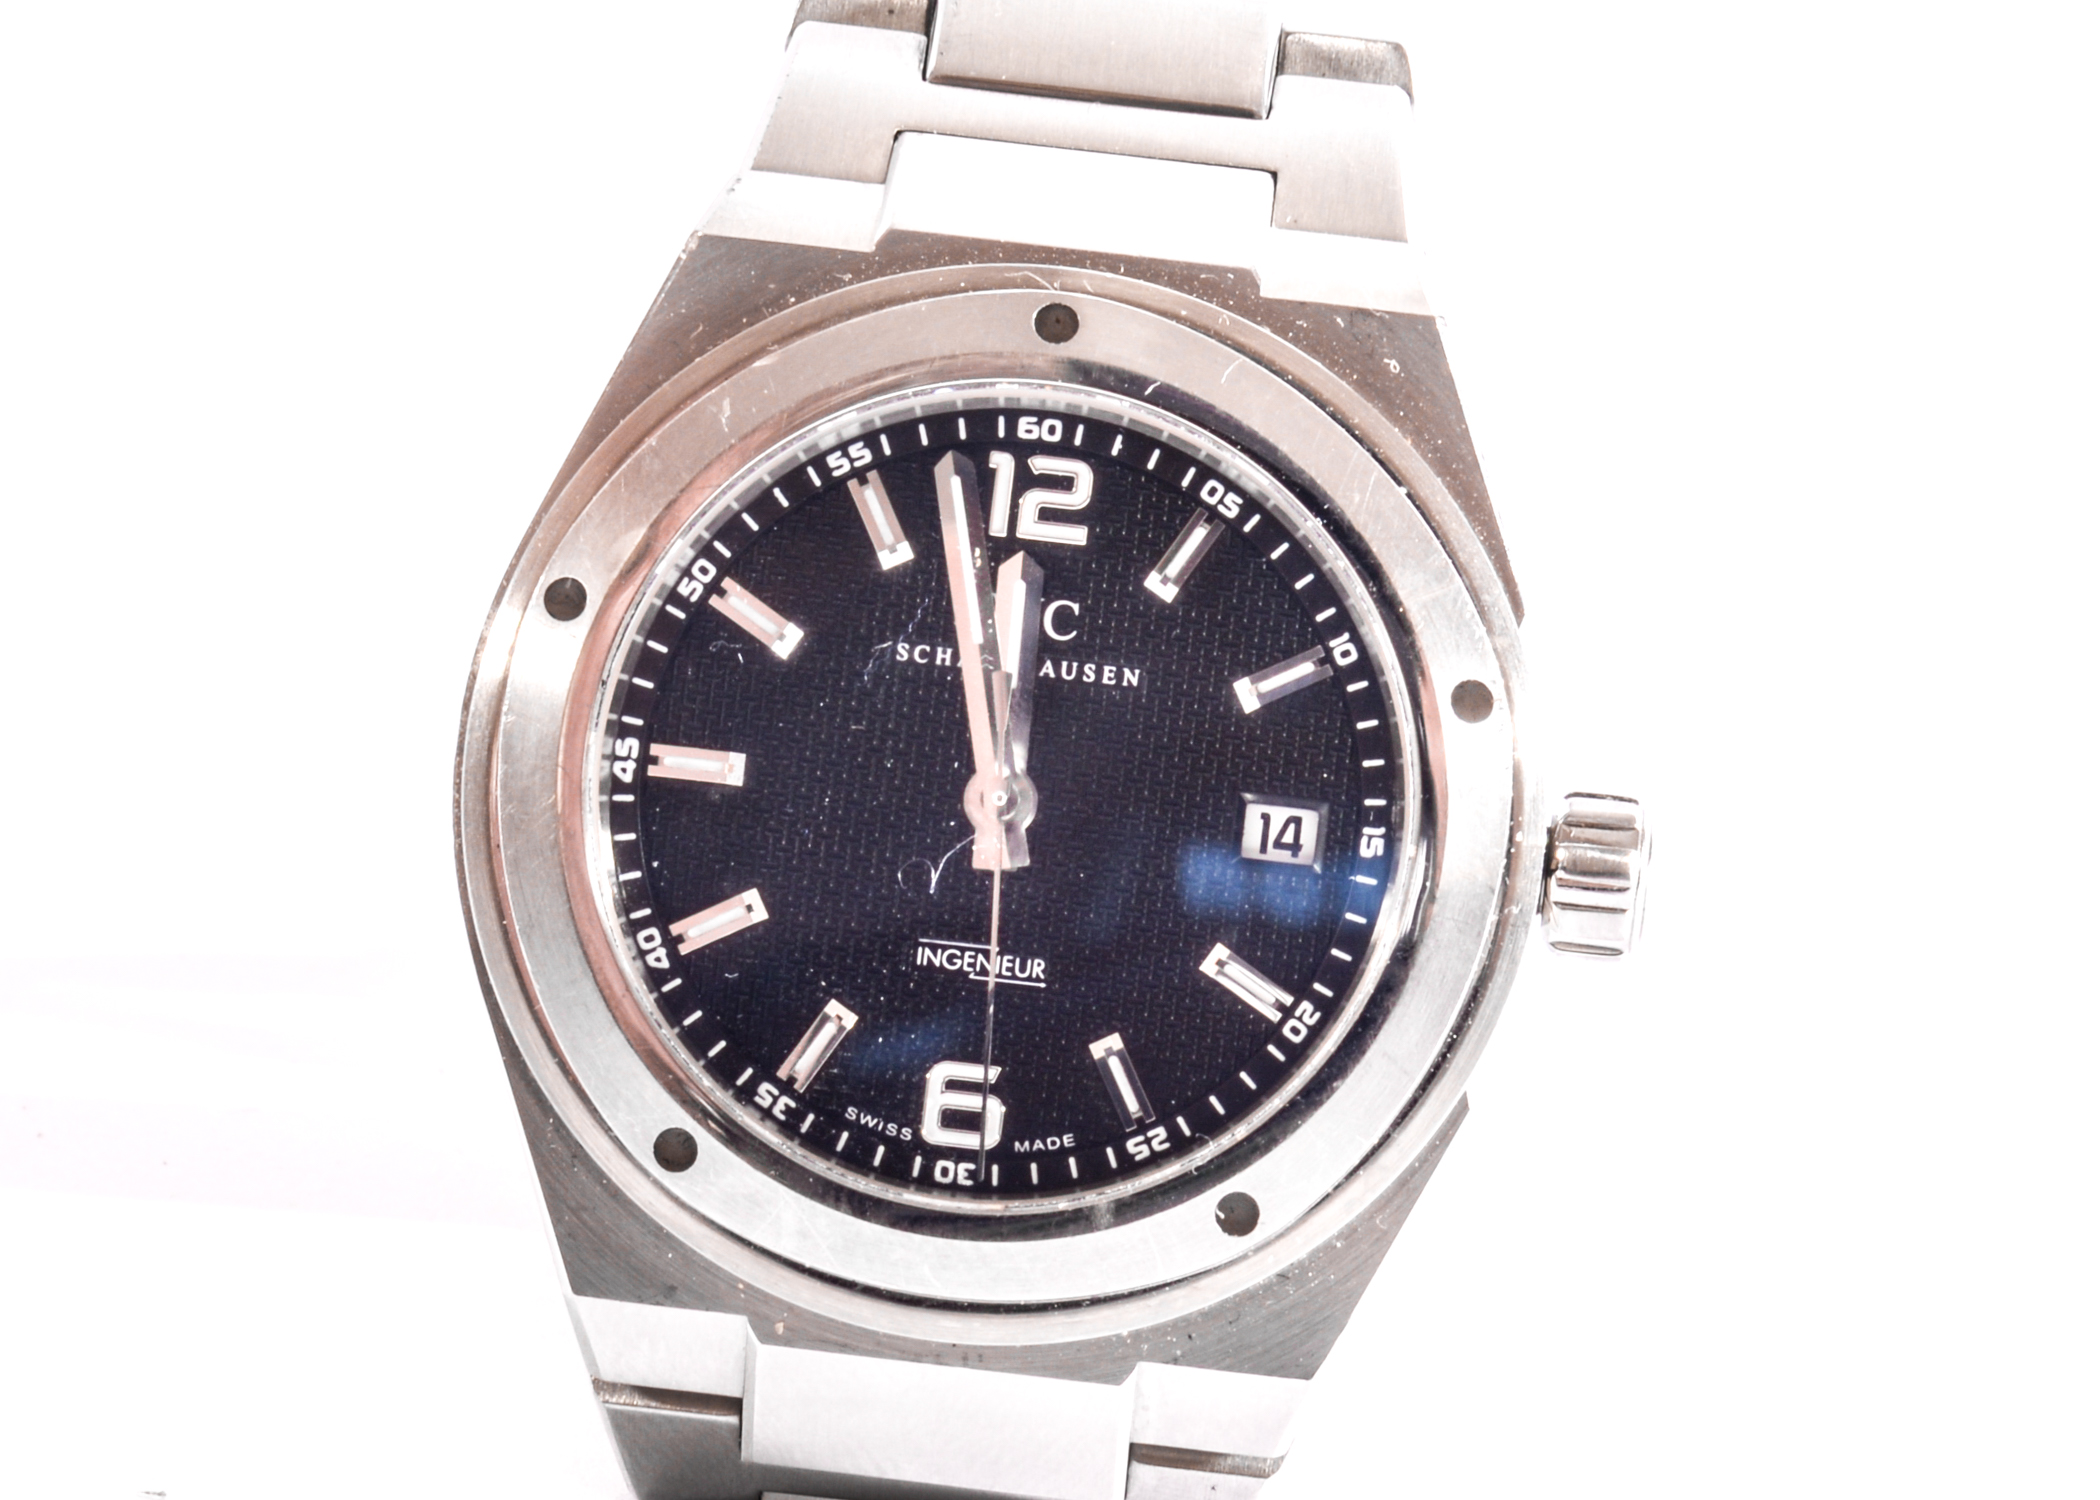 Lot 2 - An IWC SCHAFFHAUSEN Model IW 3227 Ingenieur Wrist Watch with Automatic Movement, 42.50mm,